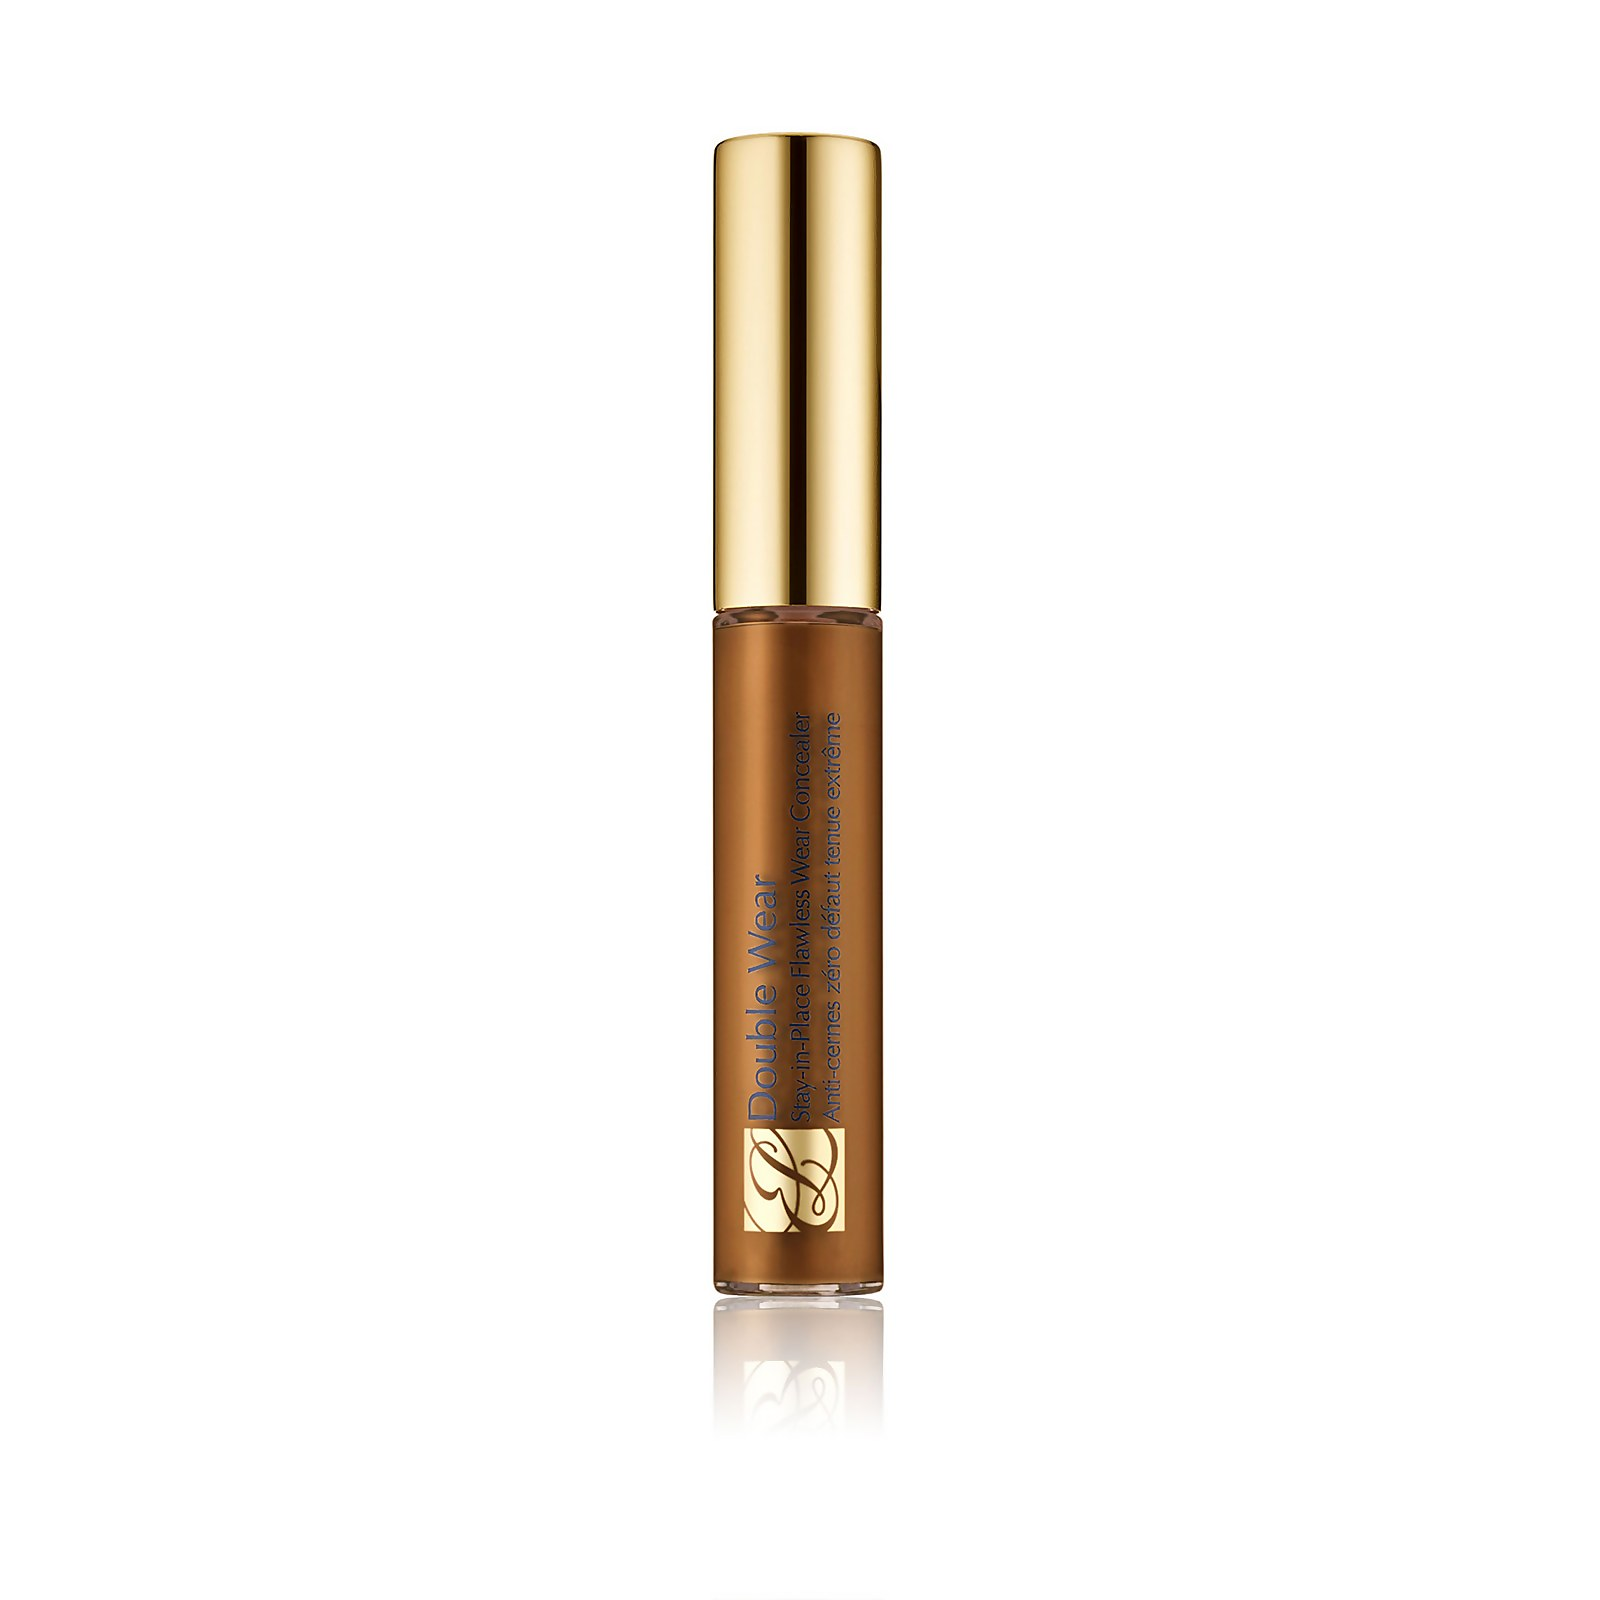 Estée Lauder Double Wear Stay-in-Place Flawless Wear Concealer 7ml (Various Shades) - 6N Extra Deep